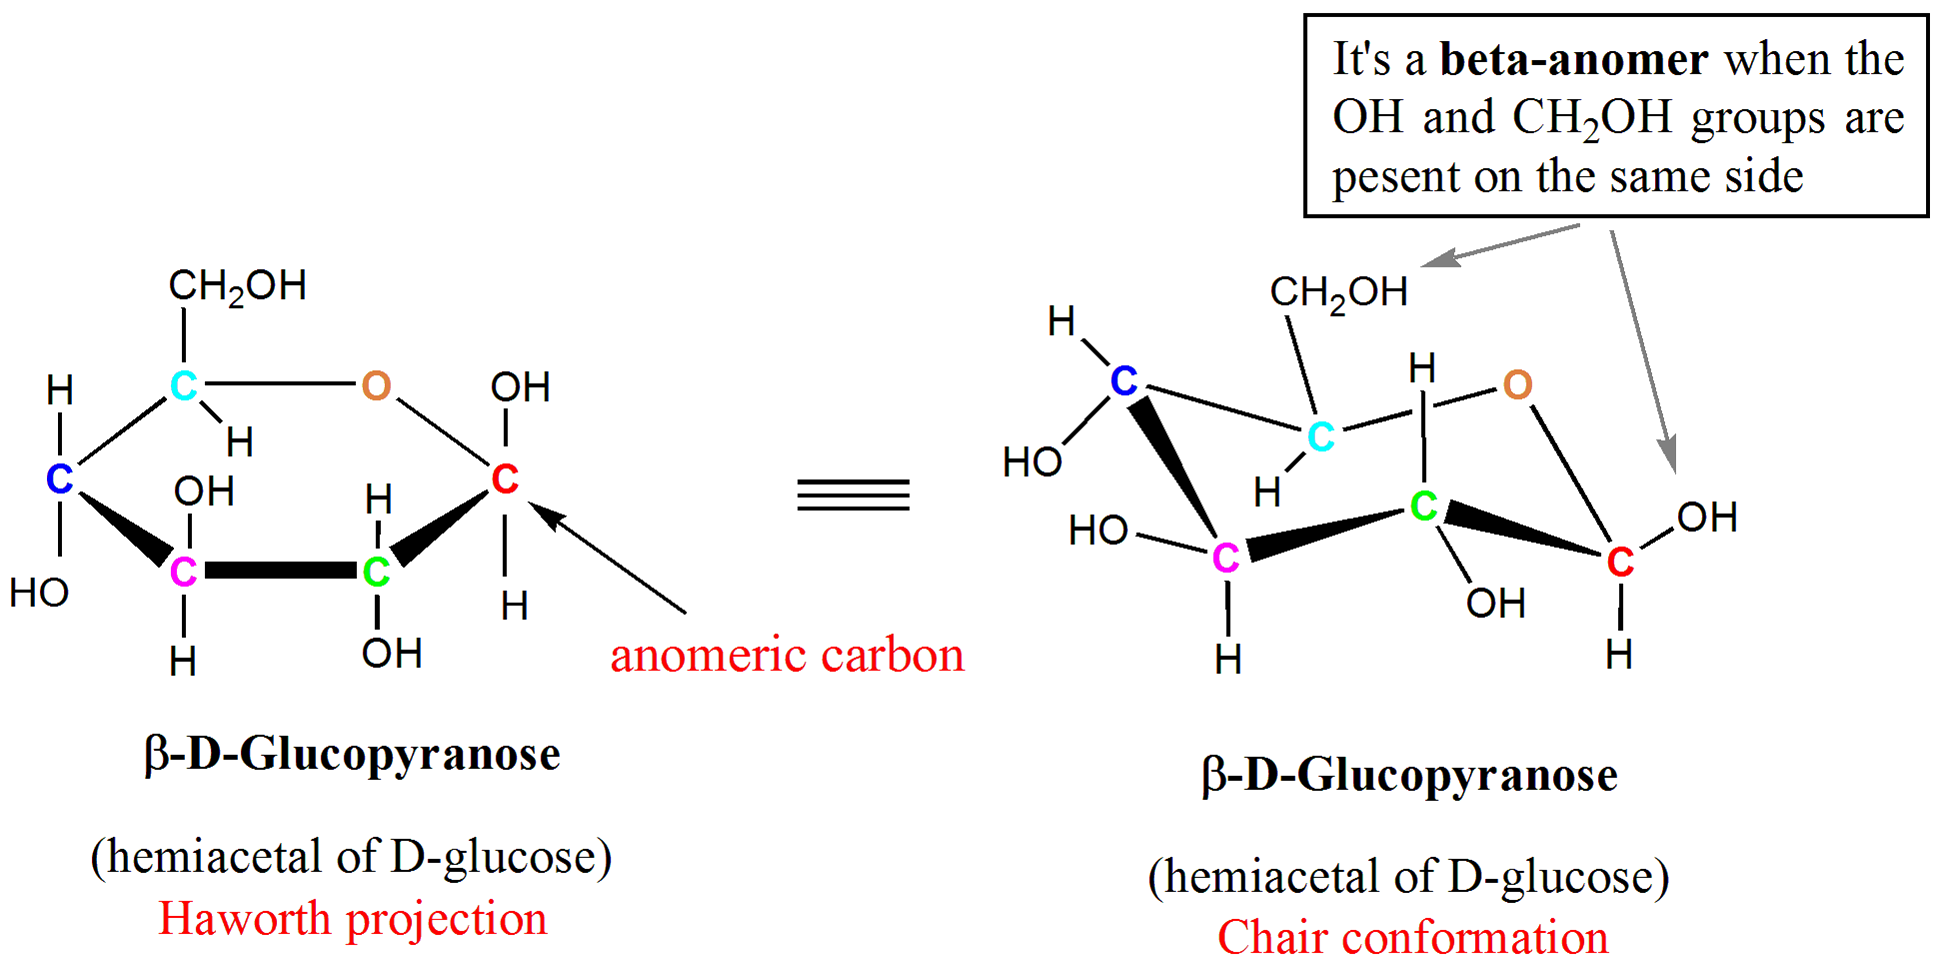 Chair conformation glucose - Haworth Projection And Chair Conformation